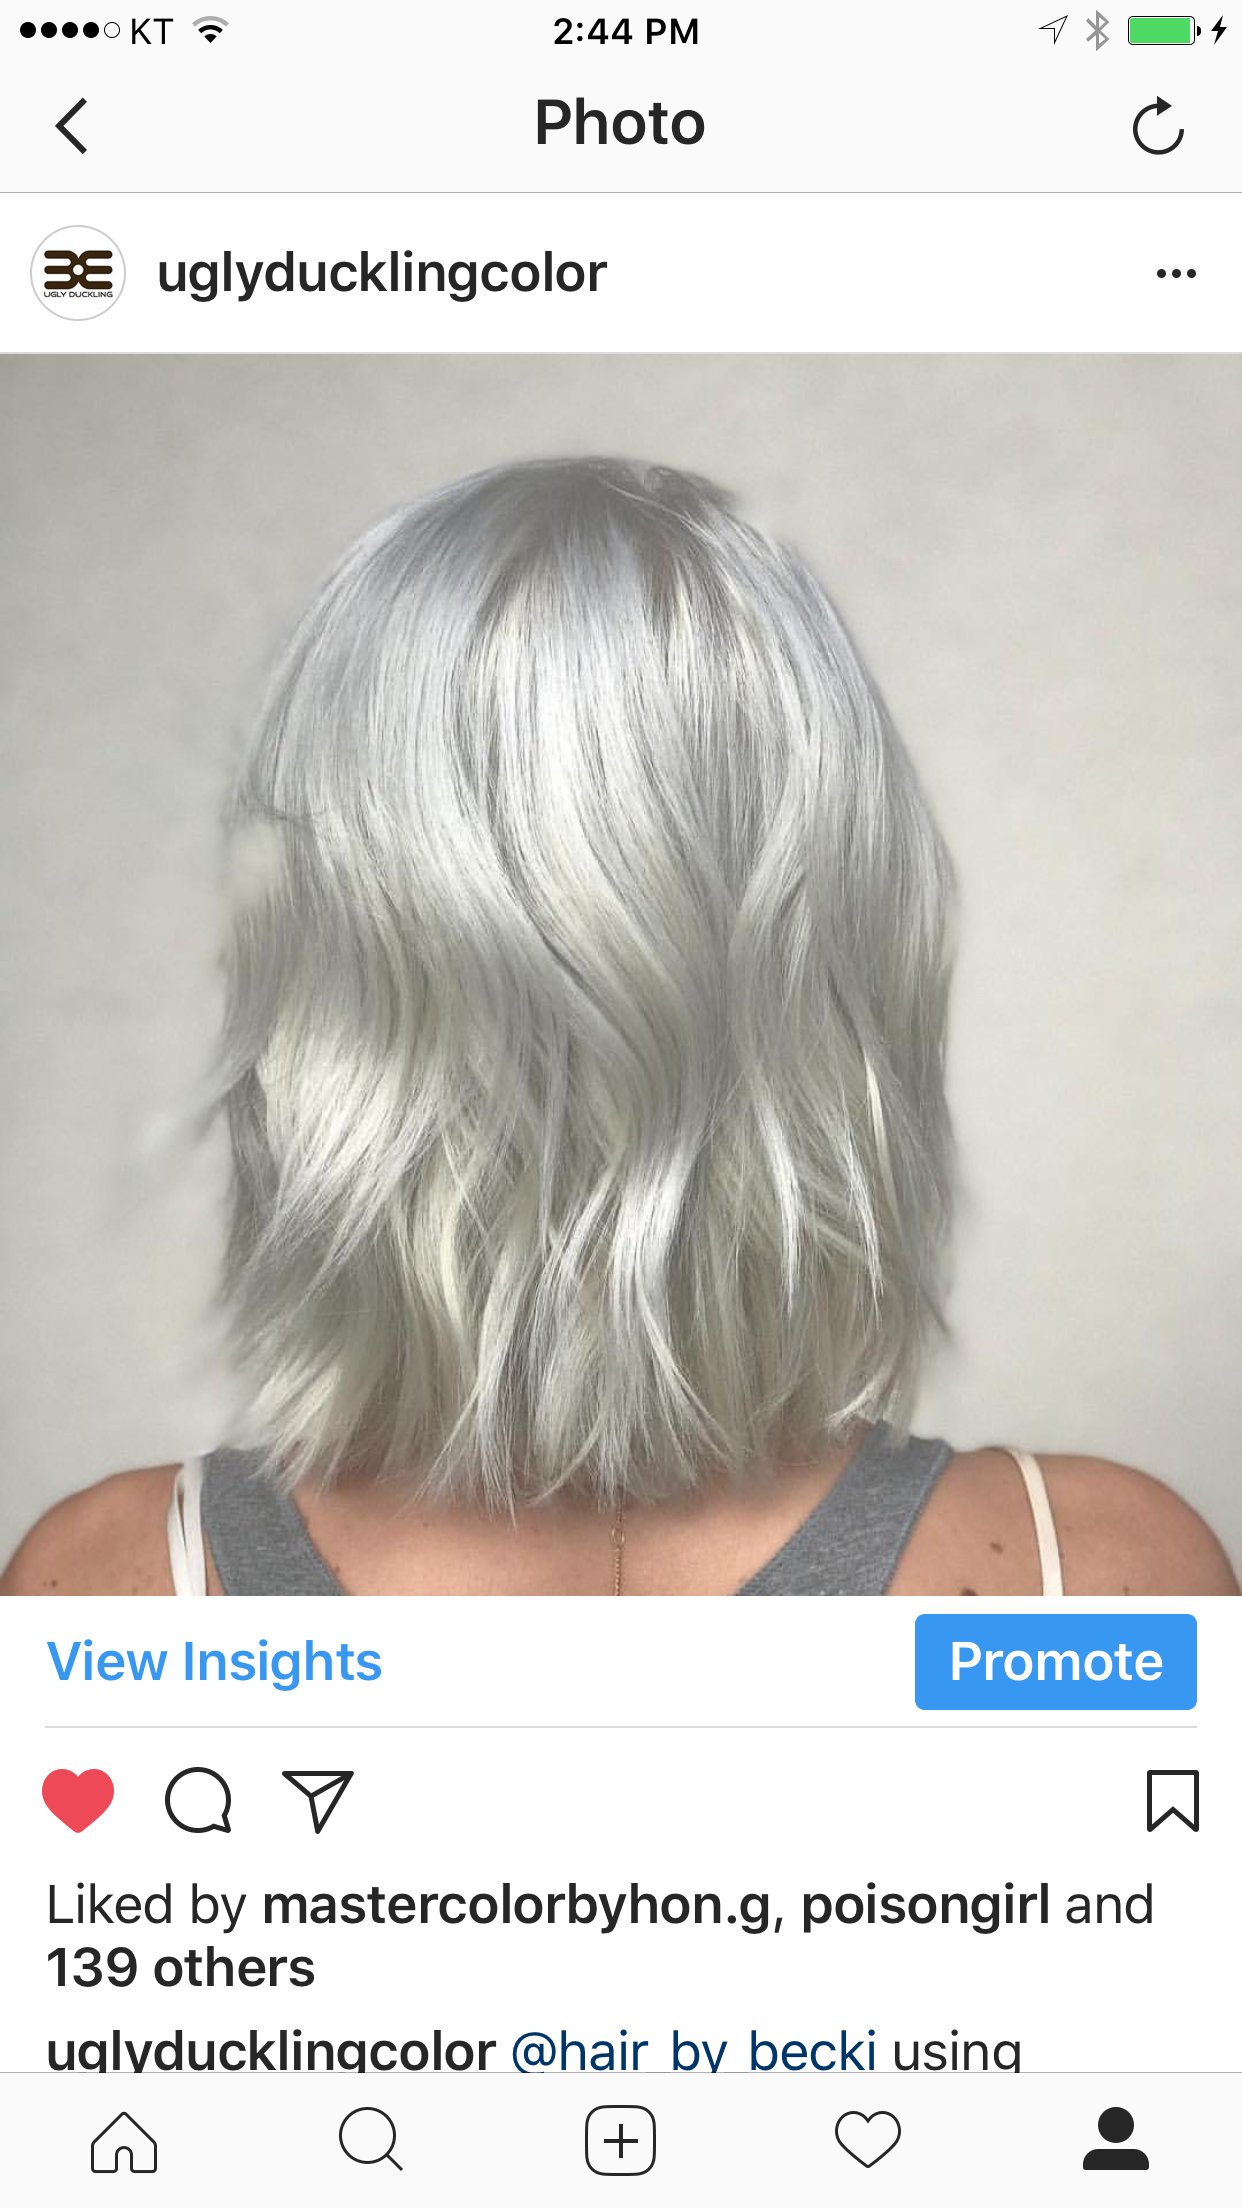 How to Make your hair white blond with bleach - WonderHowTo